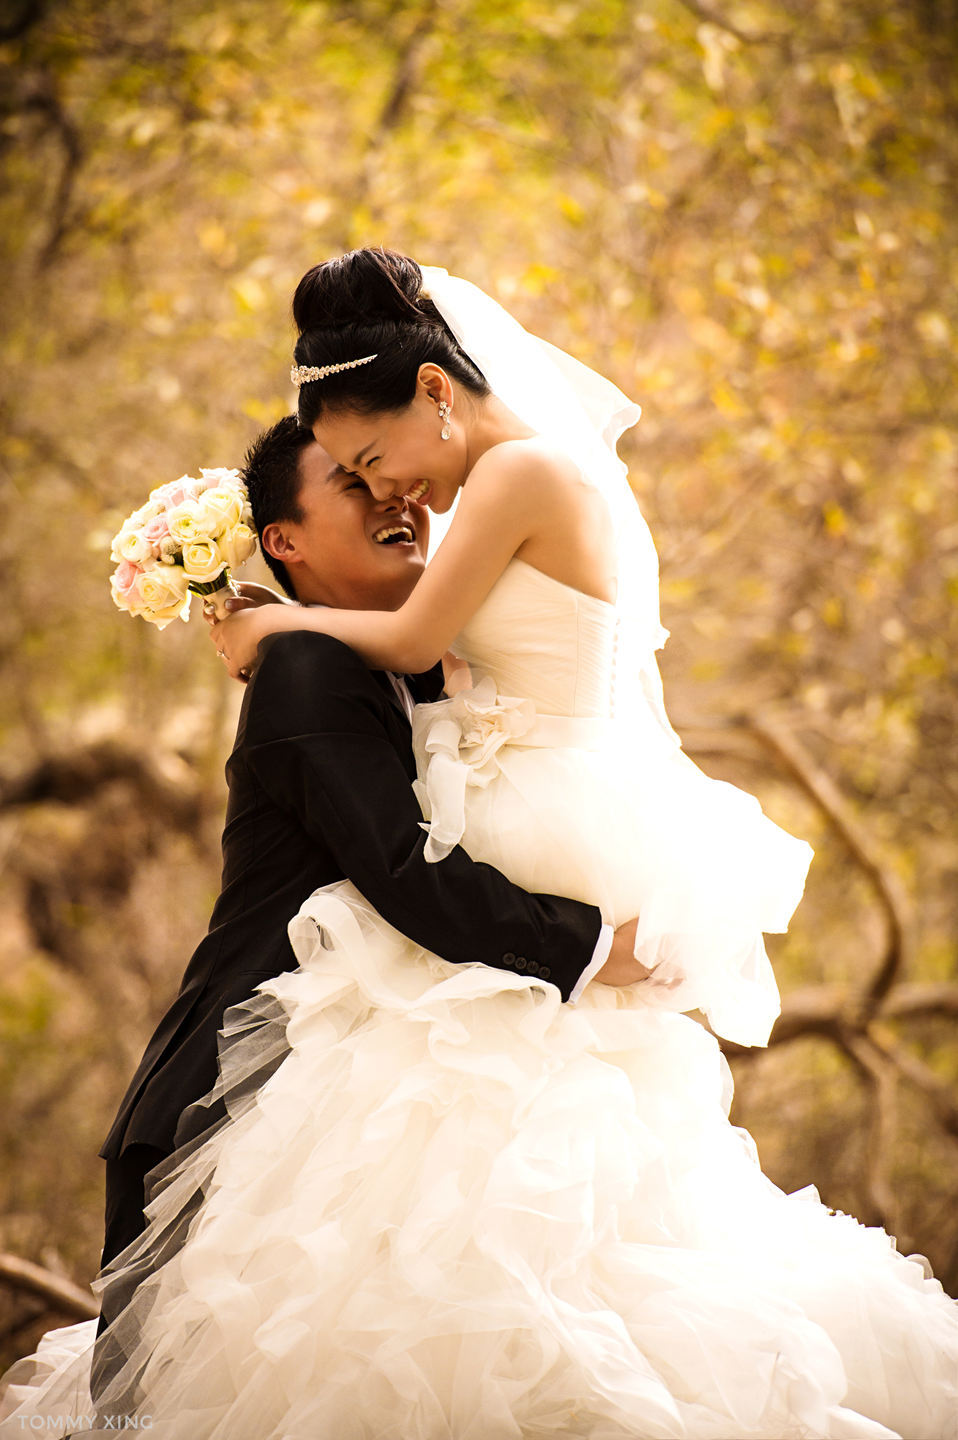 Los Angeles Wedding 洛杉矶婚纱照 Tommy Xing Photography 09.jpg